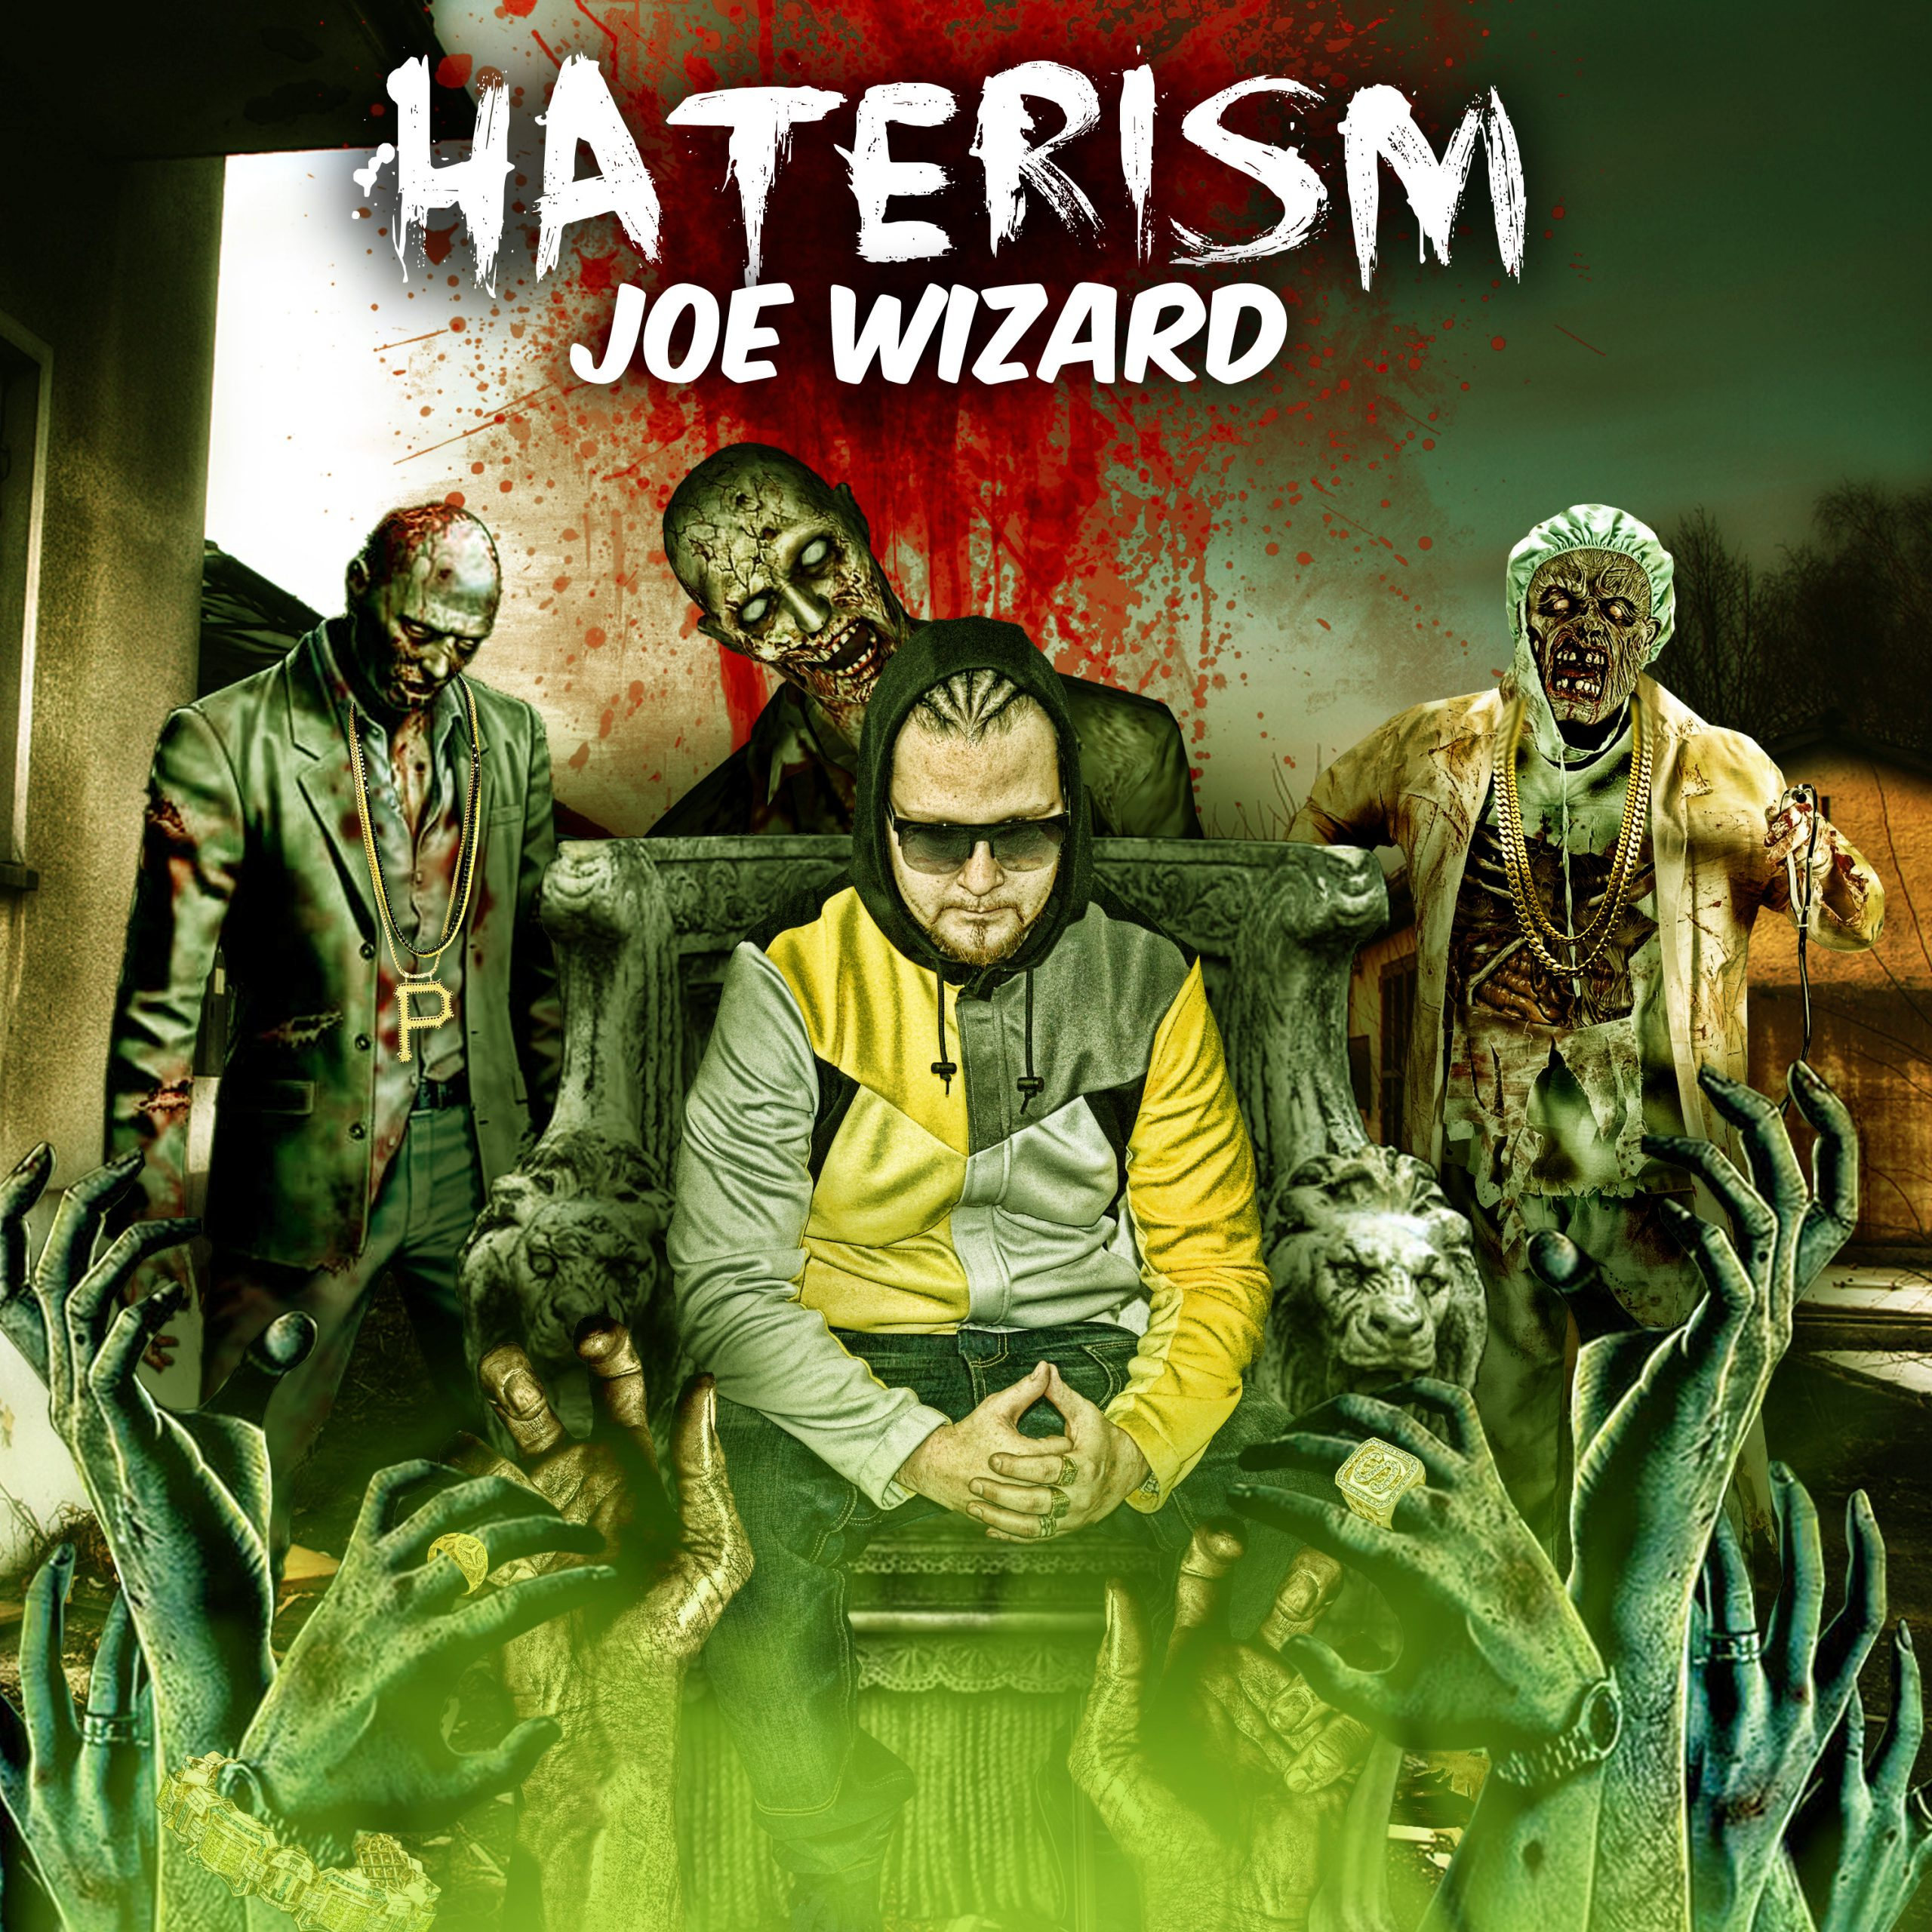 Joe Wizard Haterism cover is him surrounded by zombies